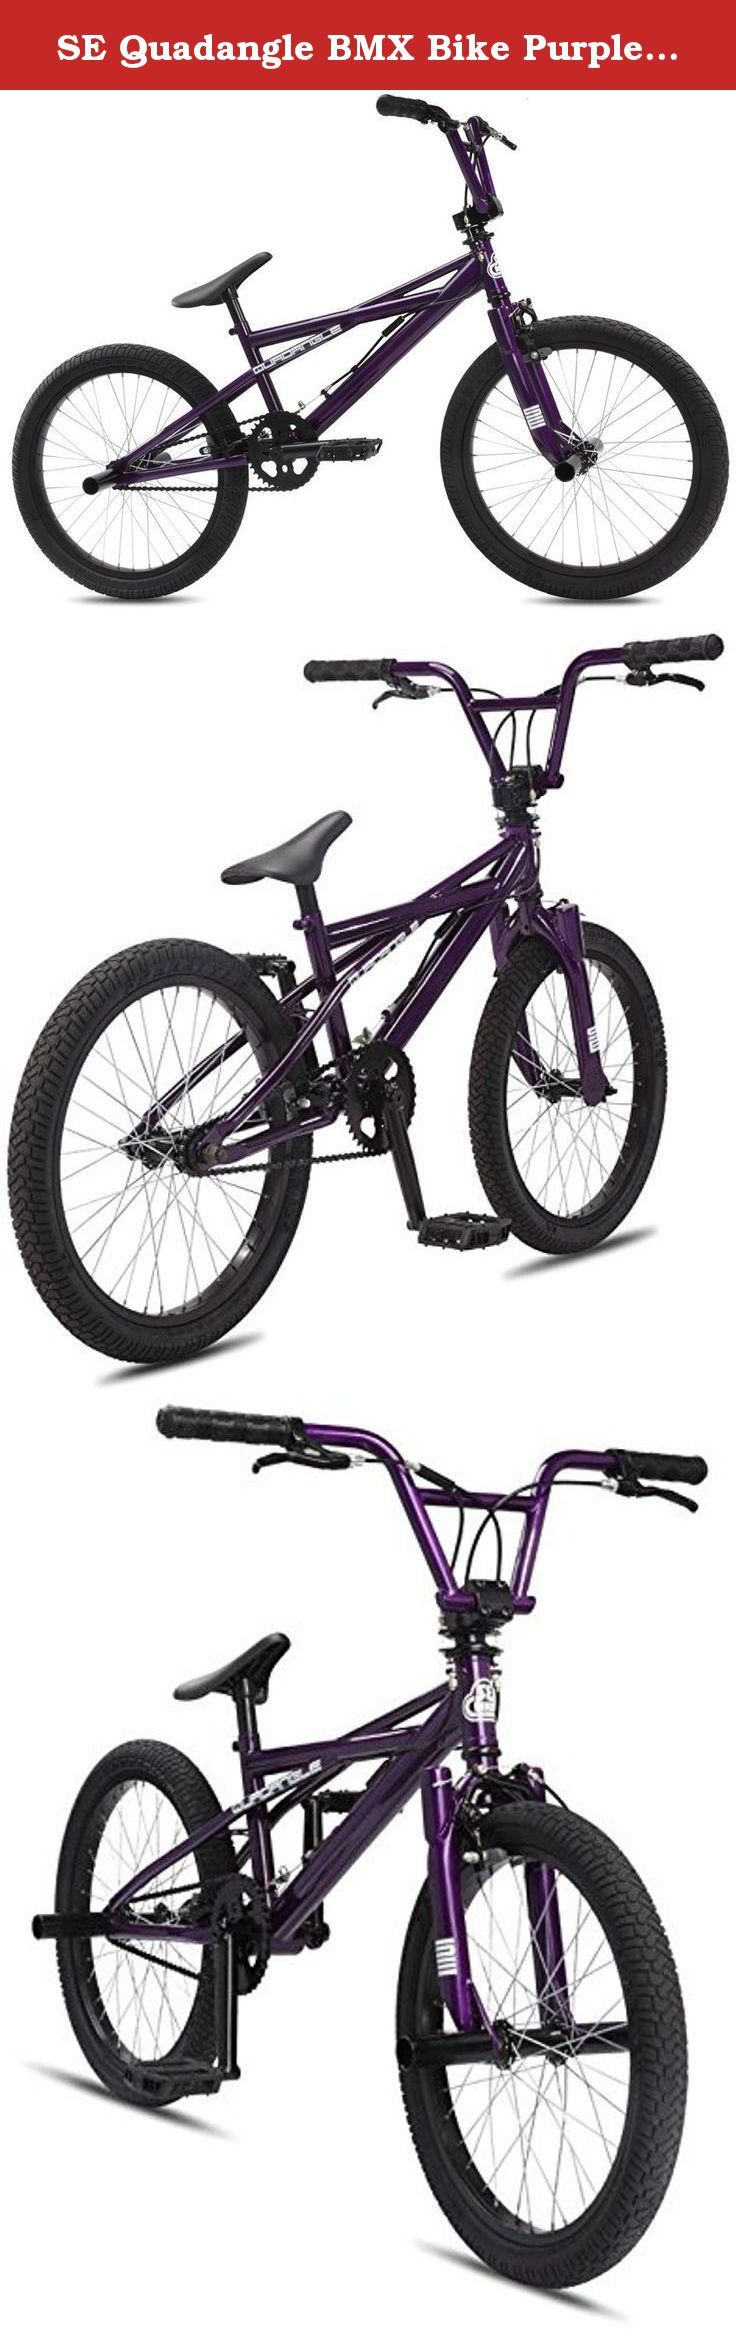 "SE Quadangle BMX Bike Purple Rain 20in Mens - '12. The Quadangle is designed for the beginning freestyle rider who wants a bike that doesn't look like all the other cookie-cutter bikes in the market. This bike has the unique Quadangle frame design, front & rear brakes, 4 pegs, 4-piece bars, and Standing Gear forks - all of the ""bells & whistles"" to catch the eye of the new freestyle rider. Key Features of the SE Quadangle BMX Bike 20in: COLOR(S) Purple Rain FRAME Quadangle Frame Design..."